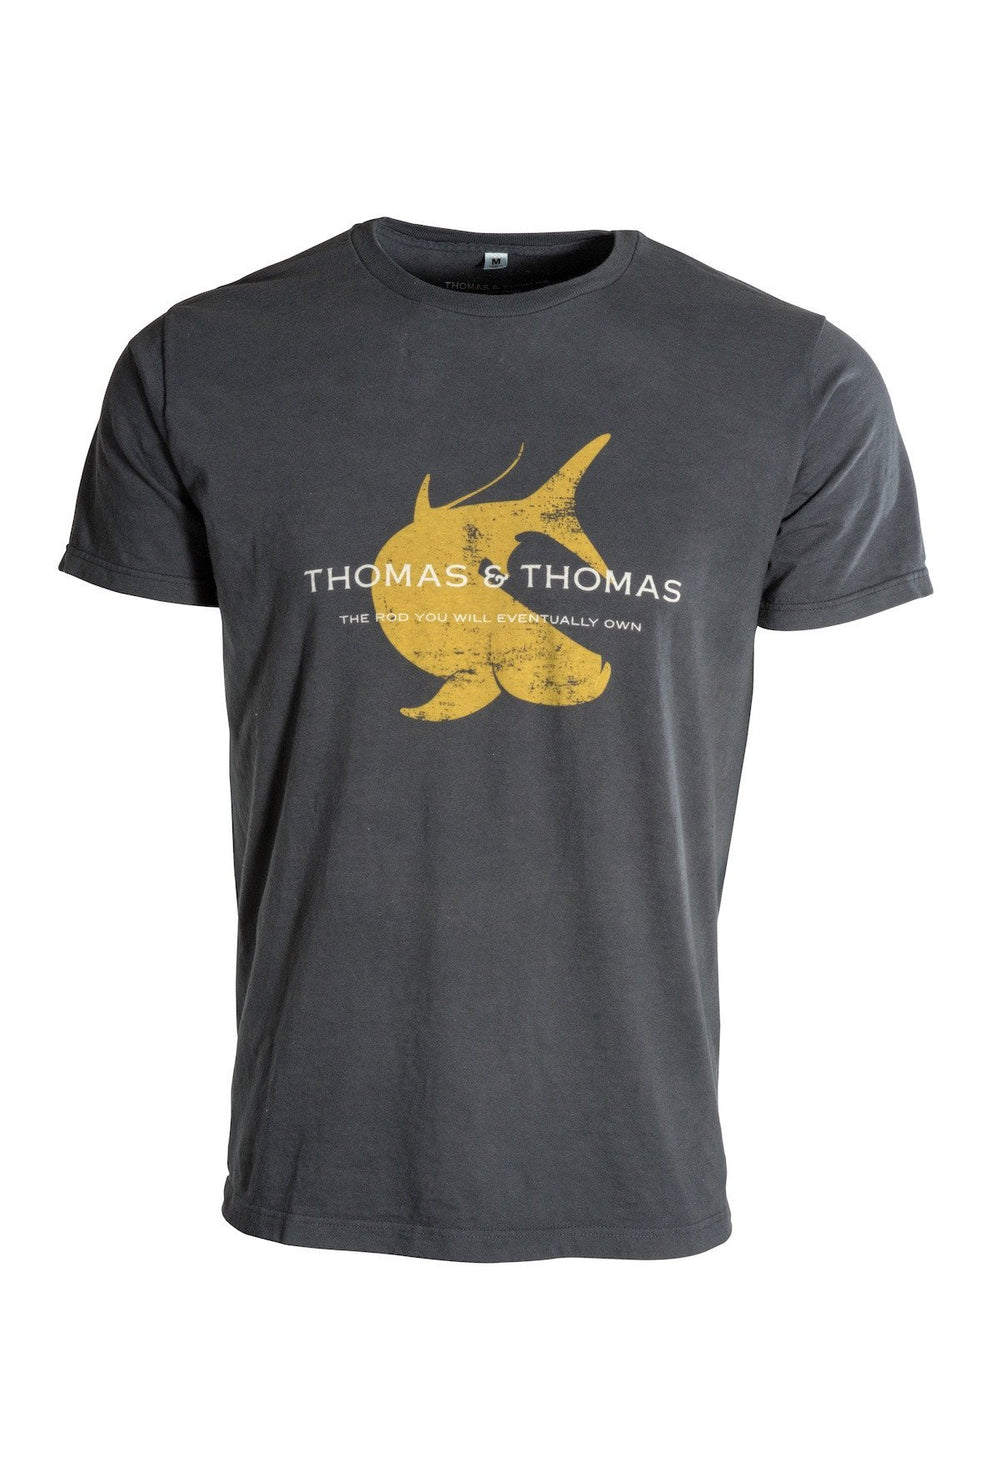 Thomas and Thomas saltwater tarpon tee shirt.